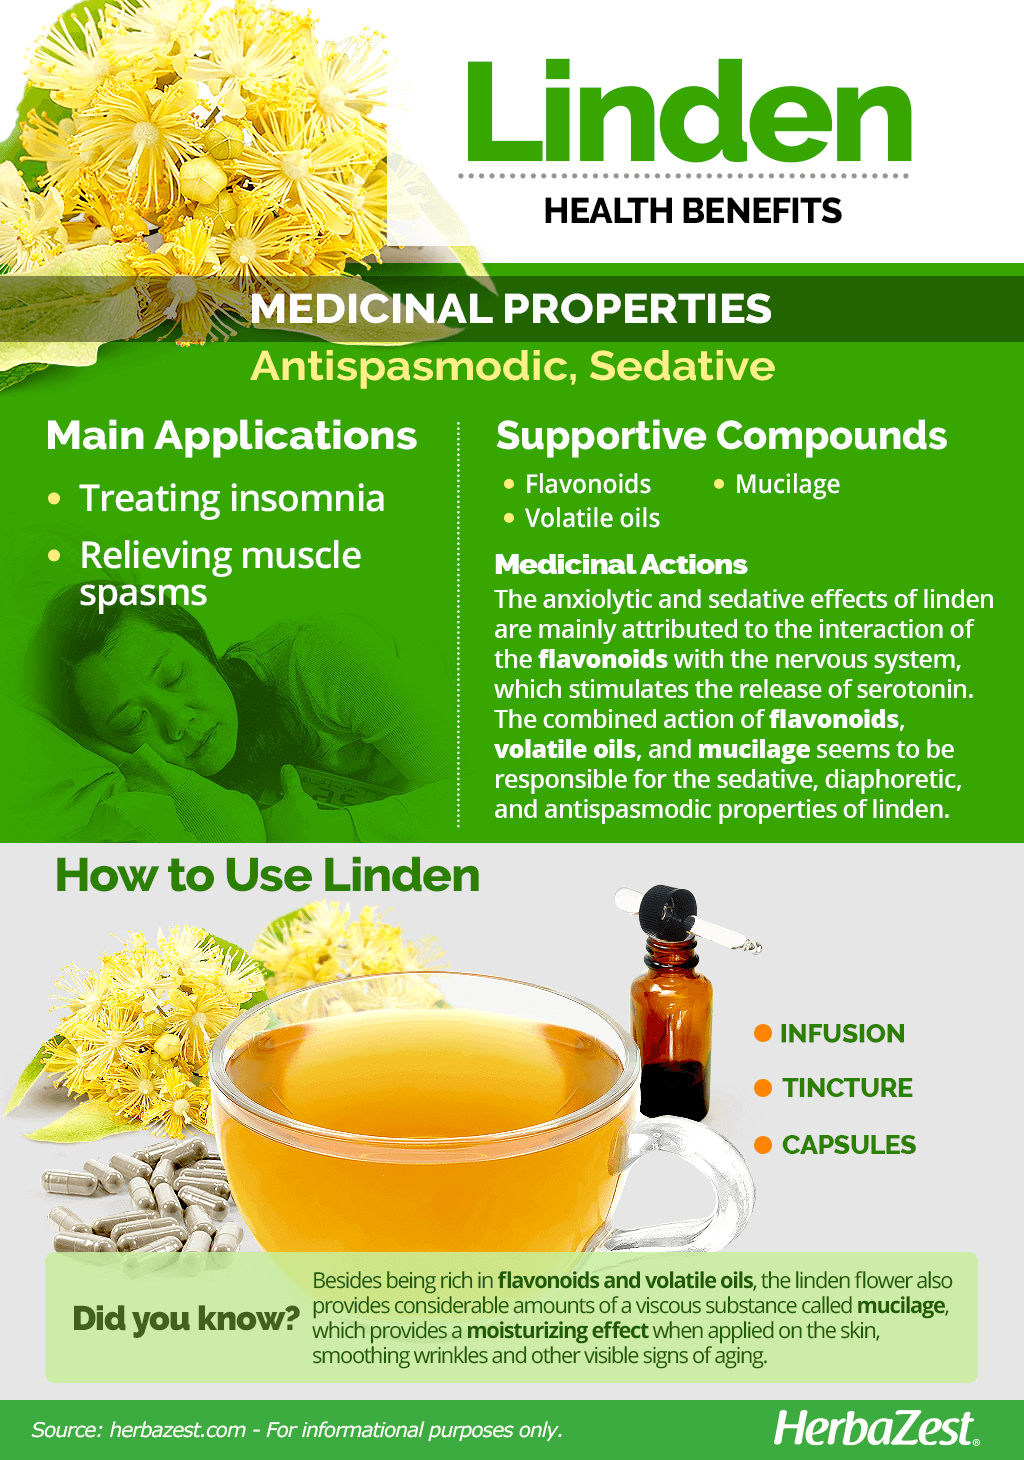 All About Linden